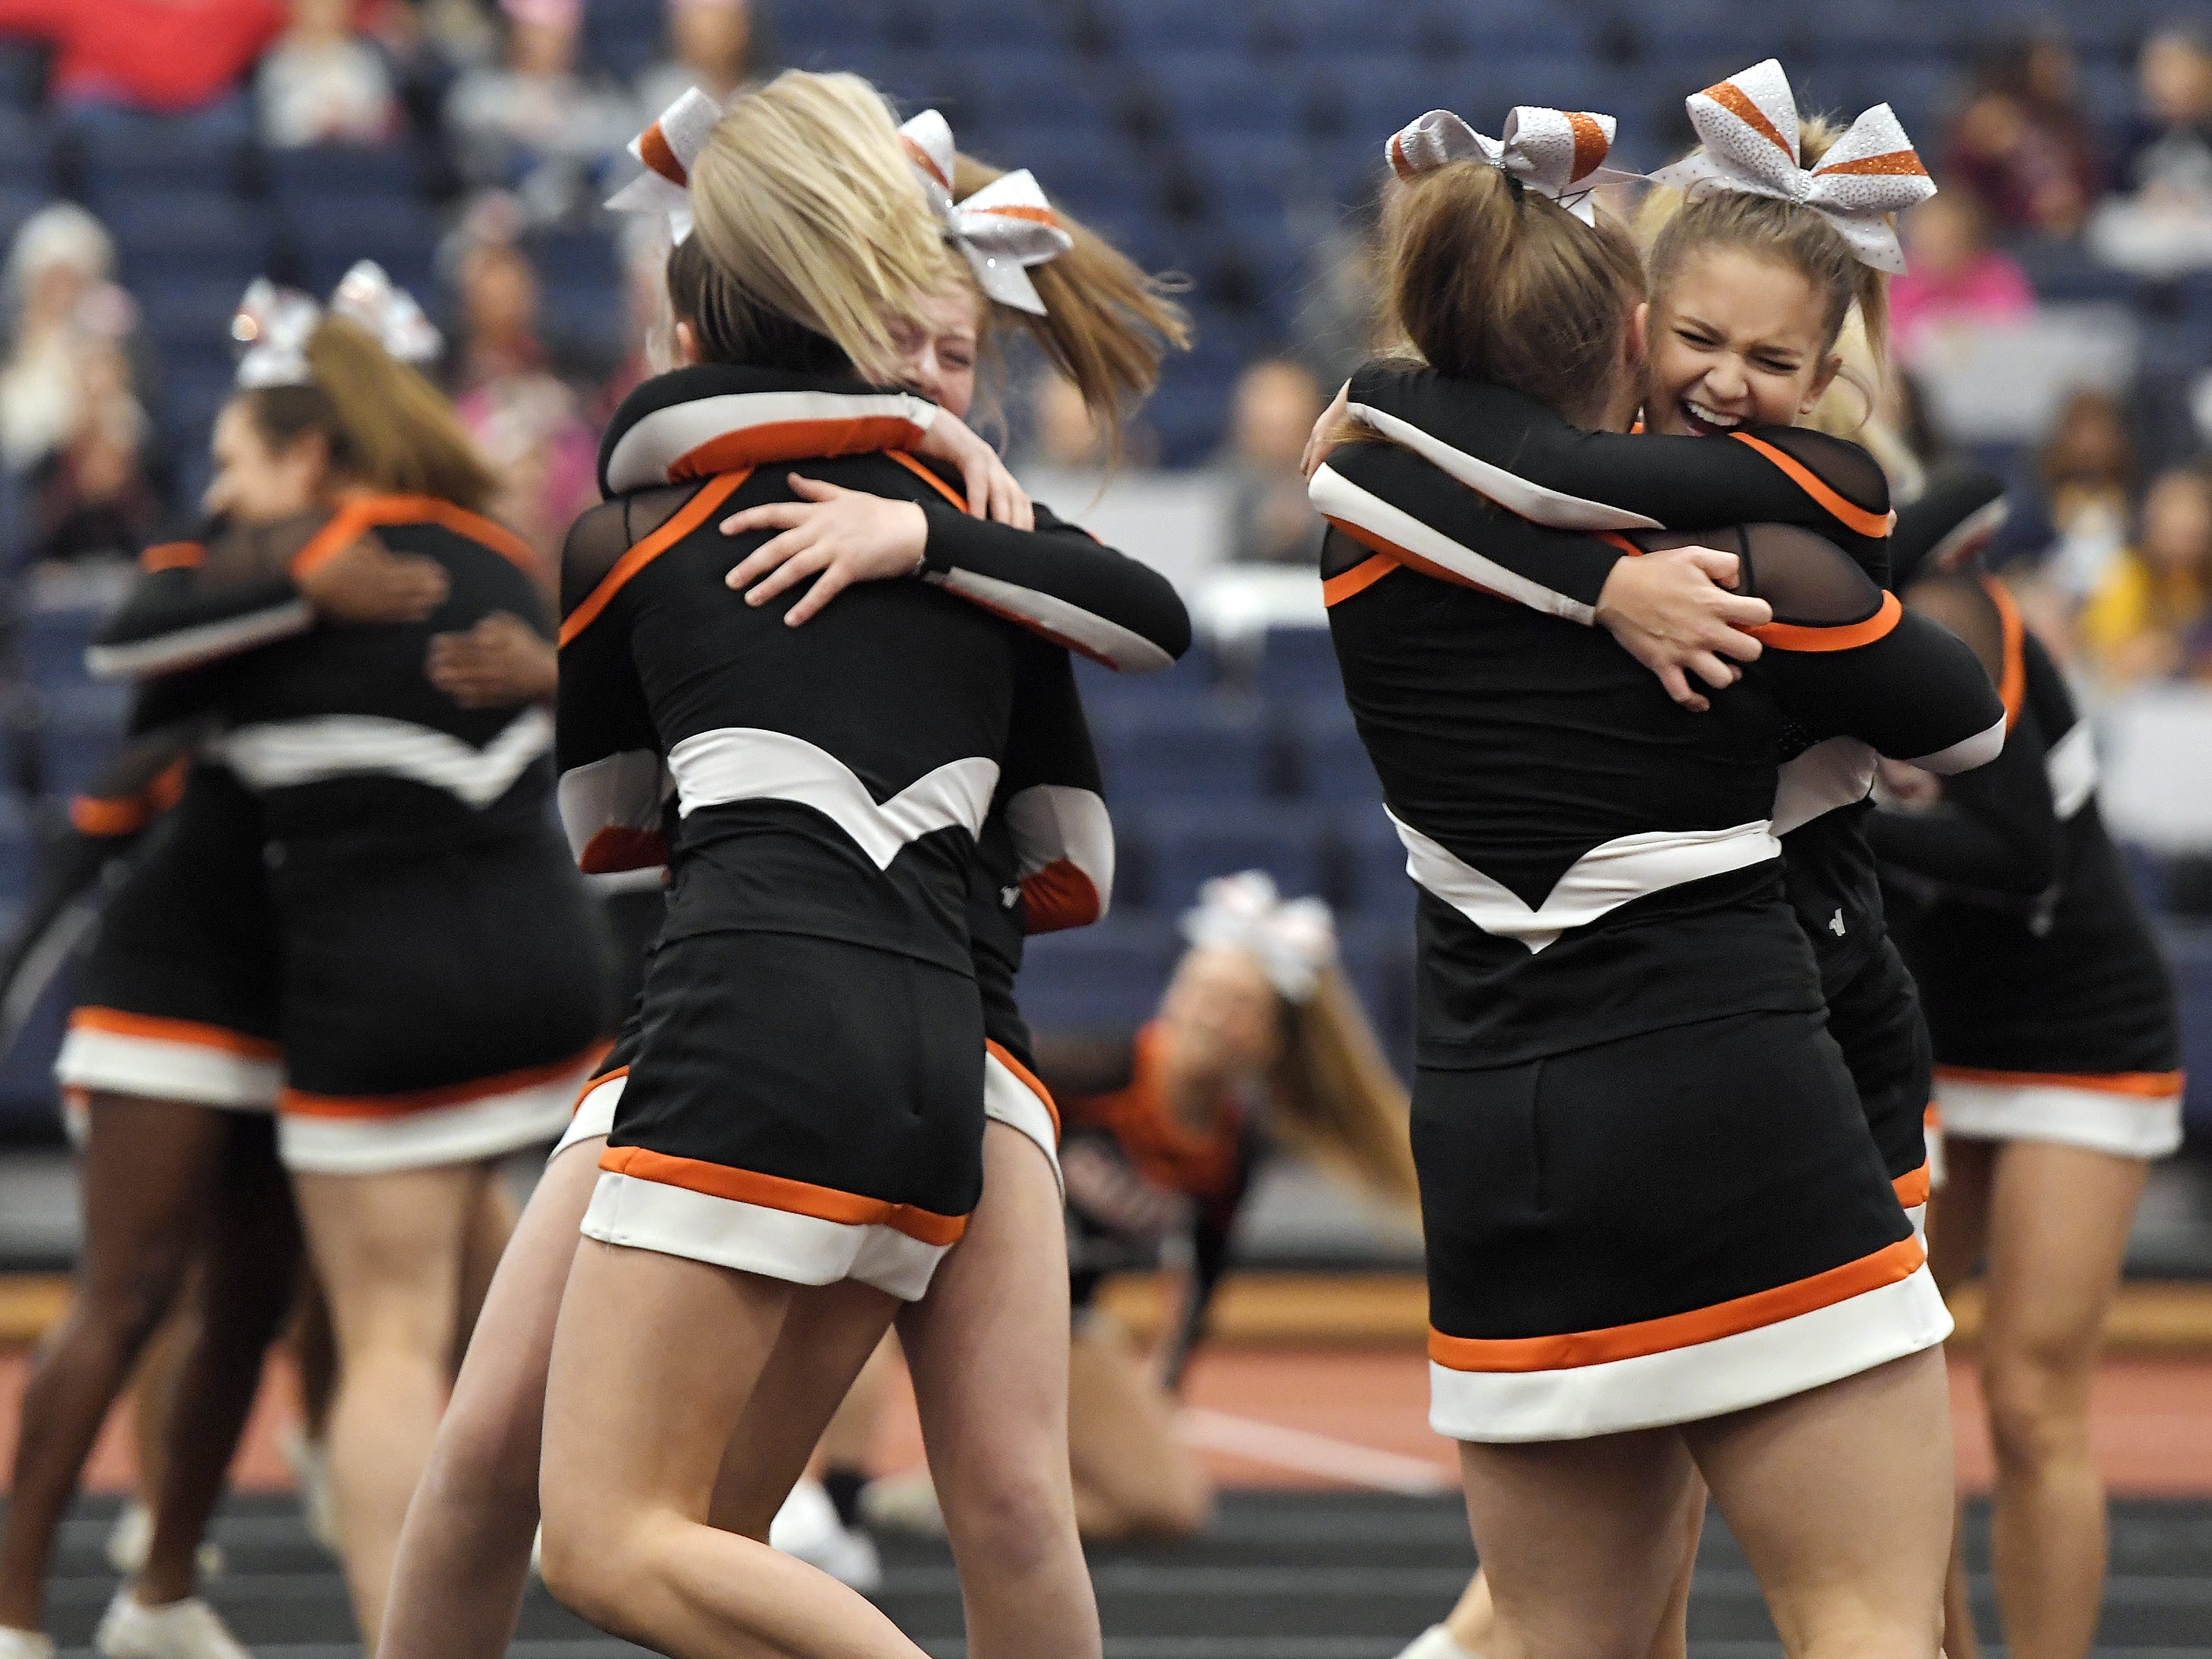 Churchville-Chili cheerleaders celebrate after their routine during the Section V Fall Cheerleading Championships at RIT, Saturday, Oct. 27, 2018.